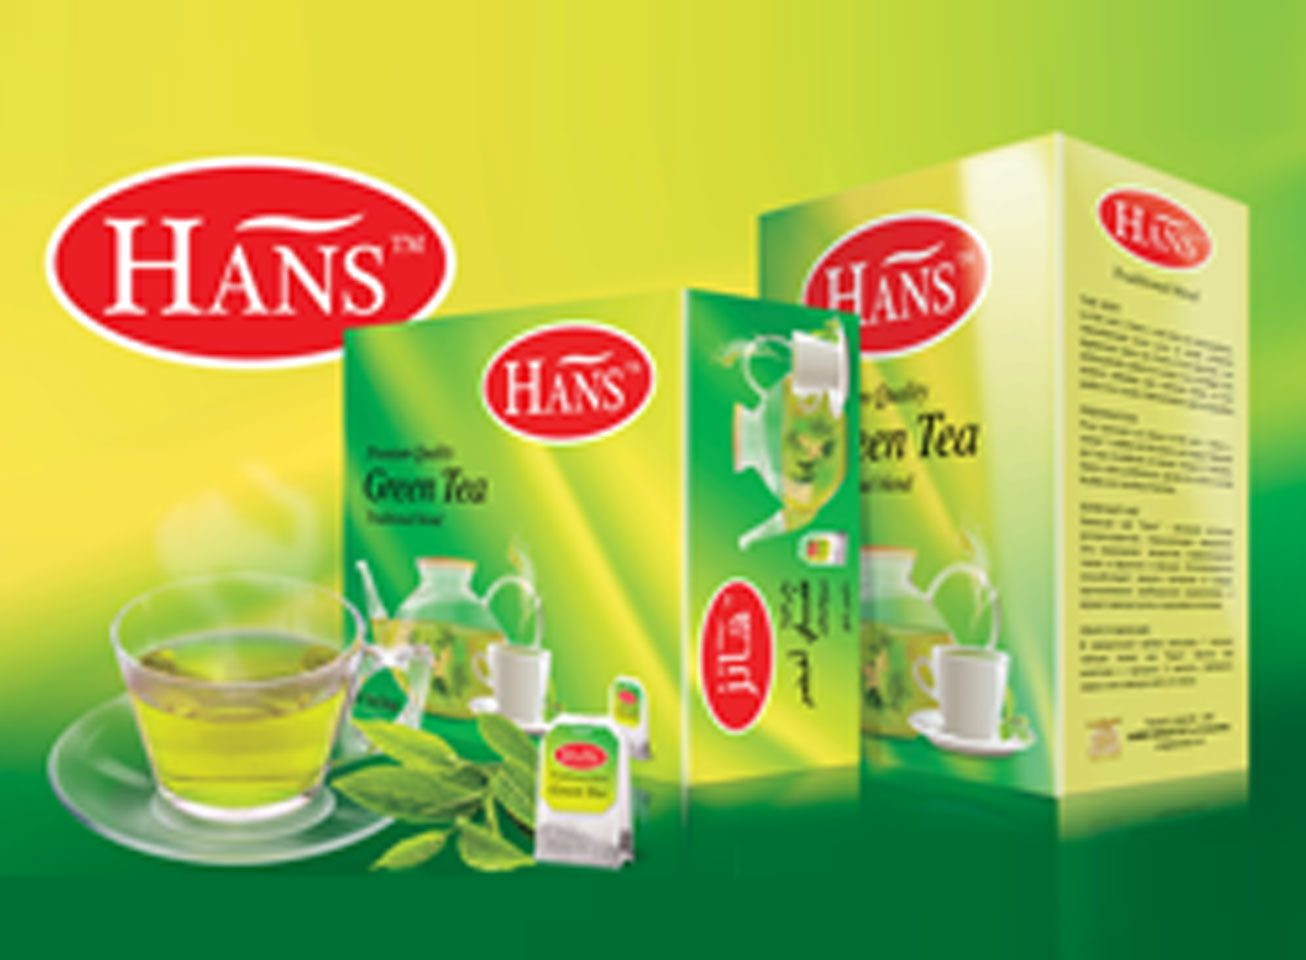 Hans Premium Quality Green Tea Traditional blend is exquisite choice of selected black tea expertly blended and enhanced with the exotic flavor of cardamon to give a truly delightful cup…